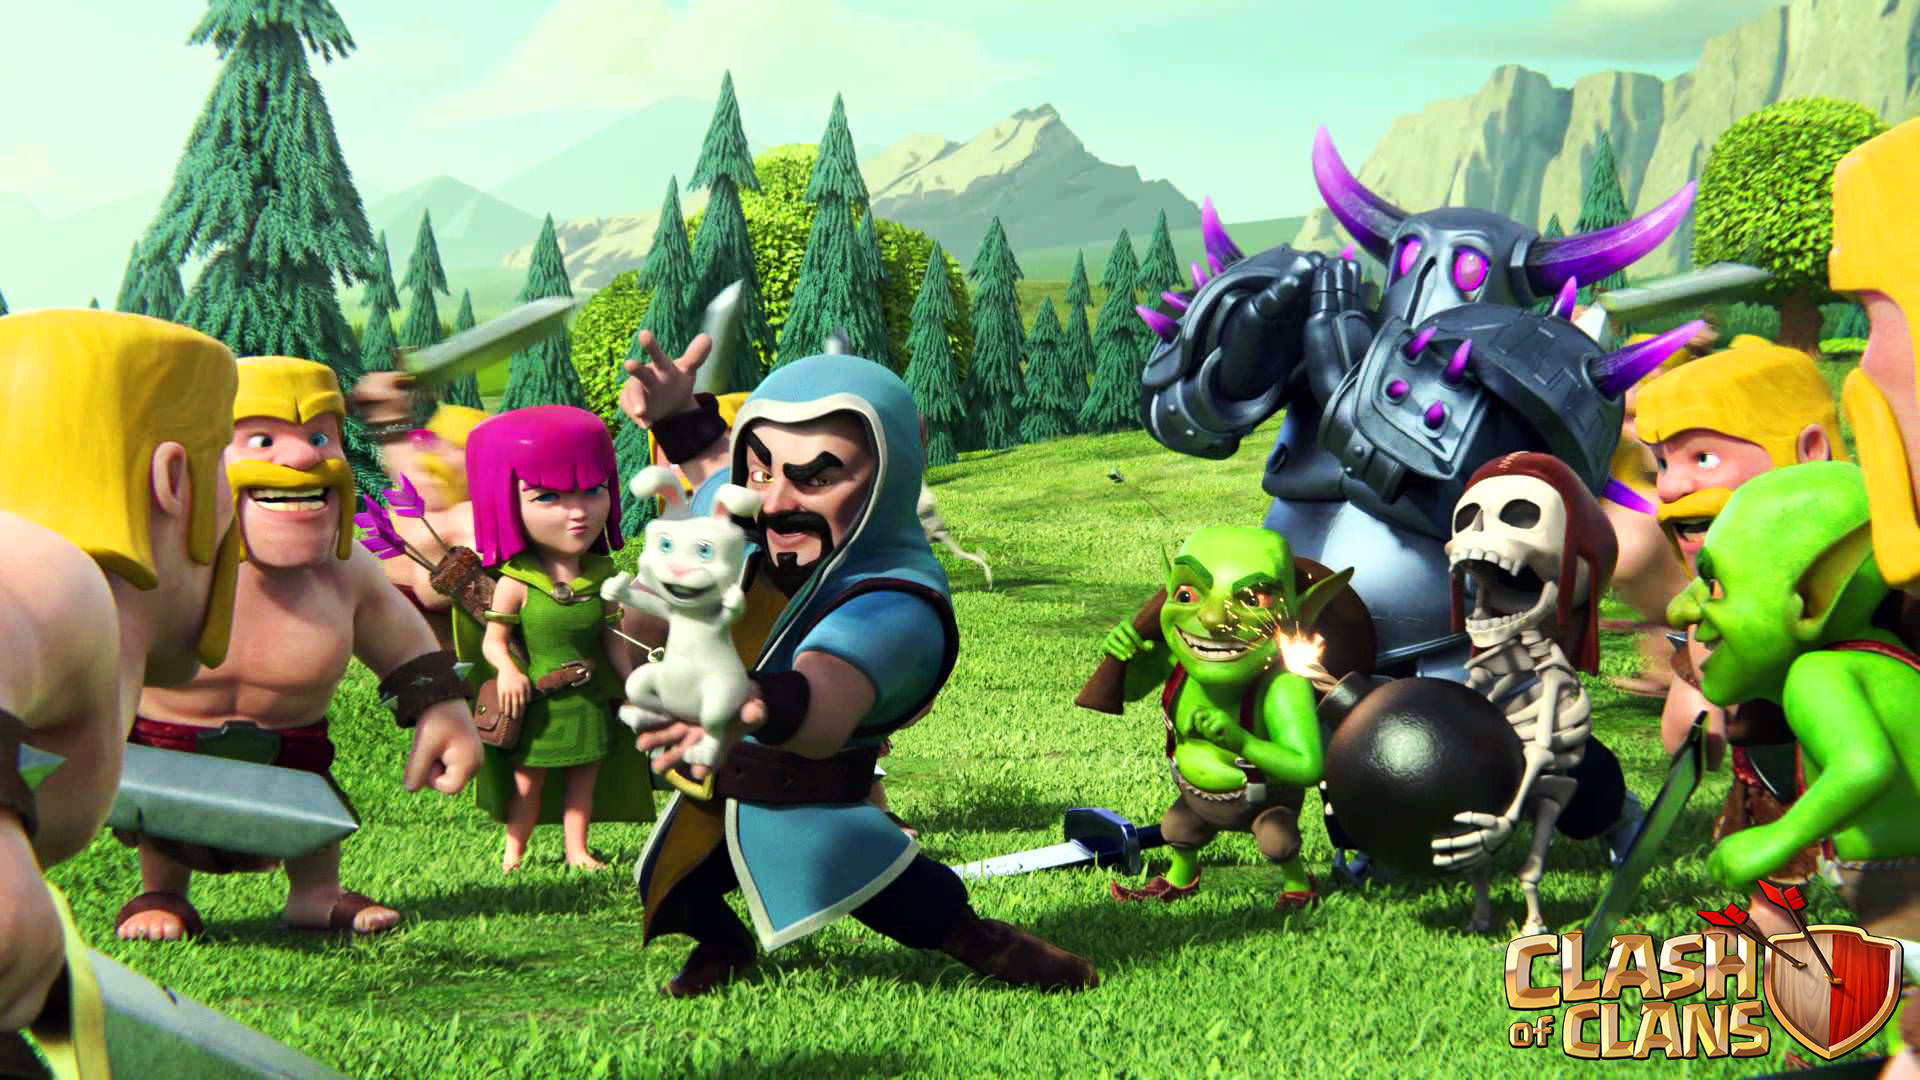 Clash Of Clans 1920x1080